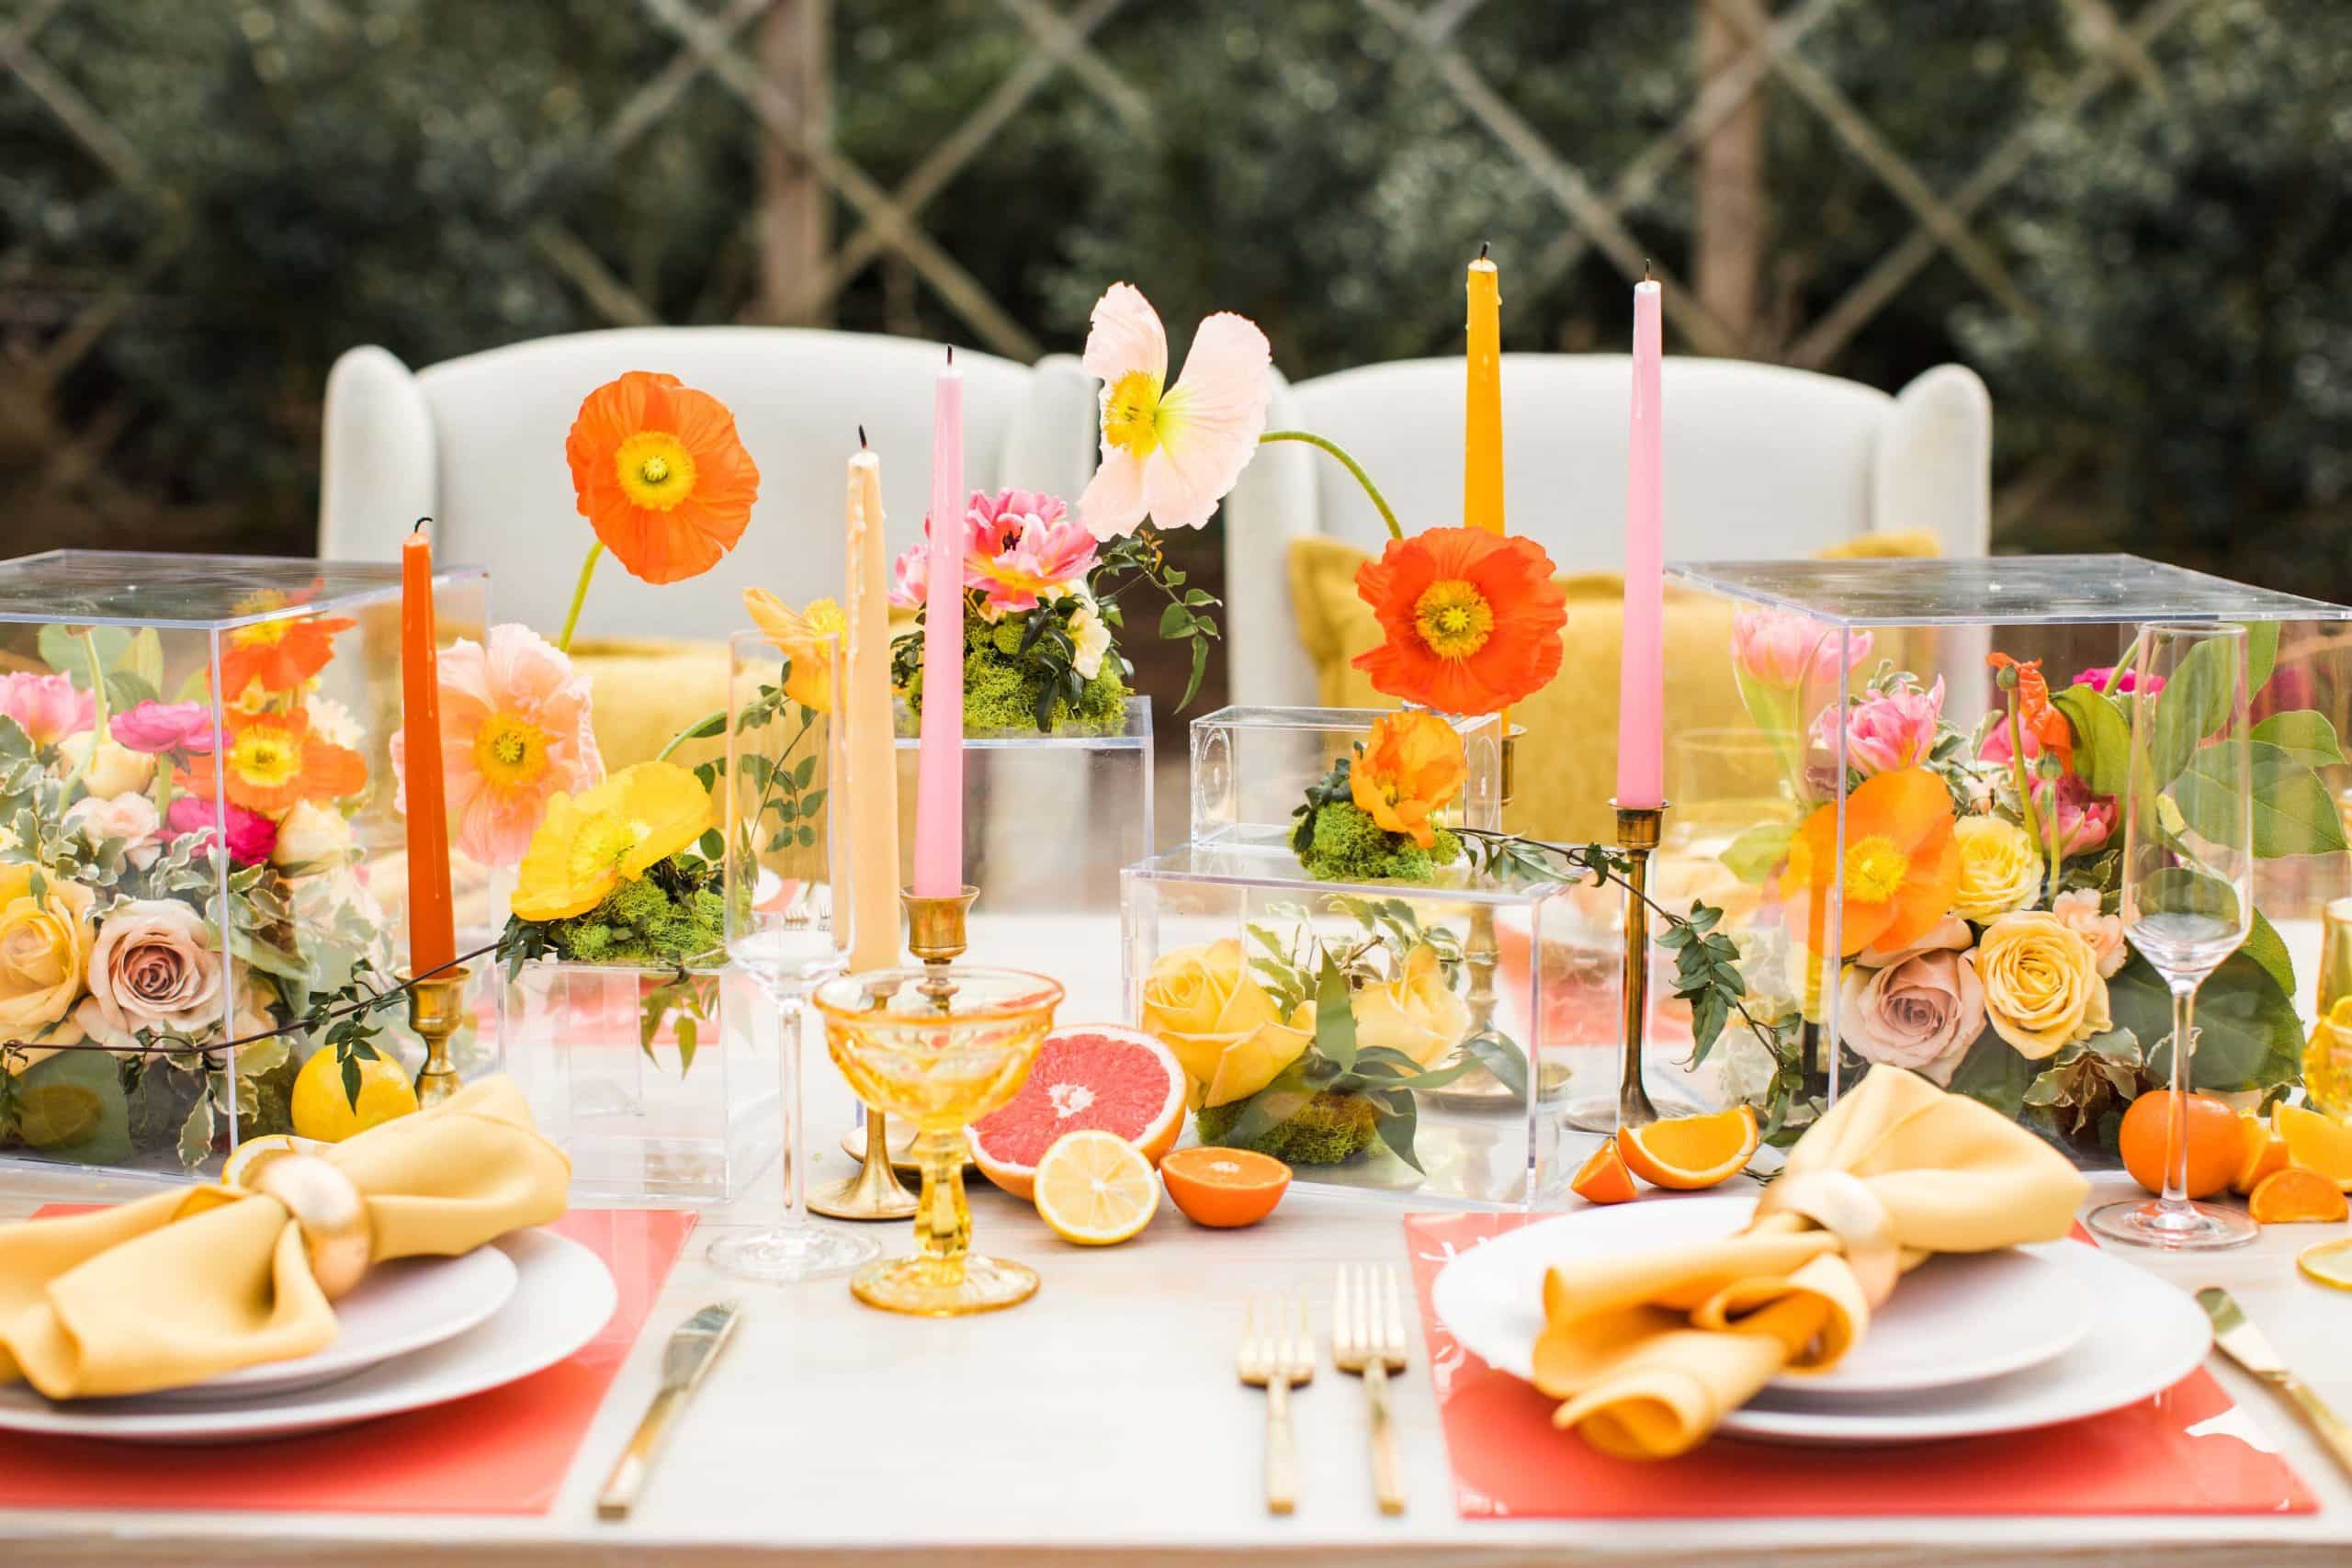 Wedding Themes | Wedding Theme Ideas | Wedding Theme Colors | Wedding Themes  Summer: 1975